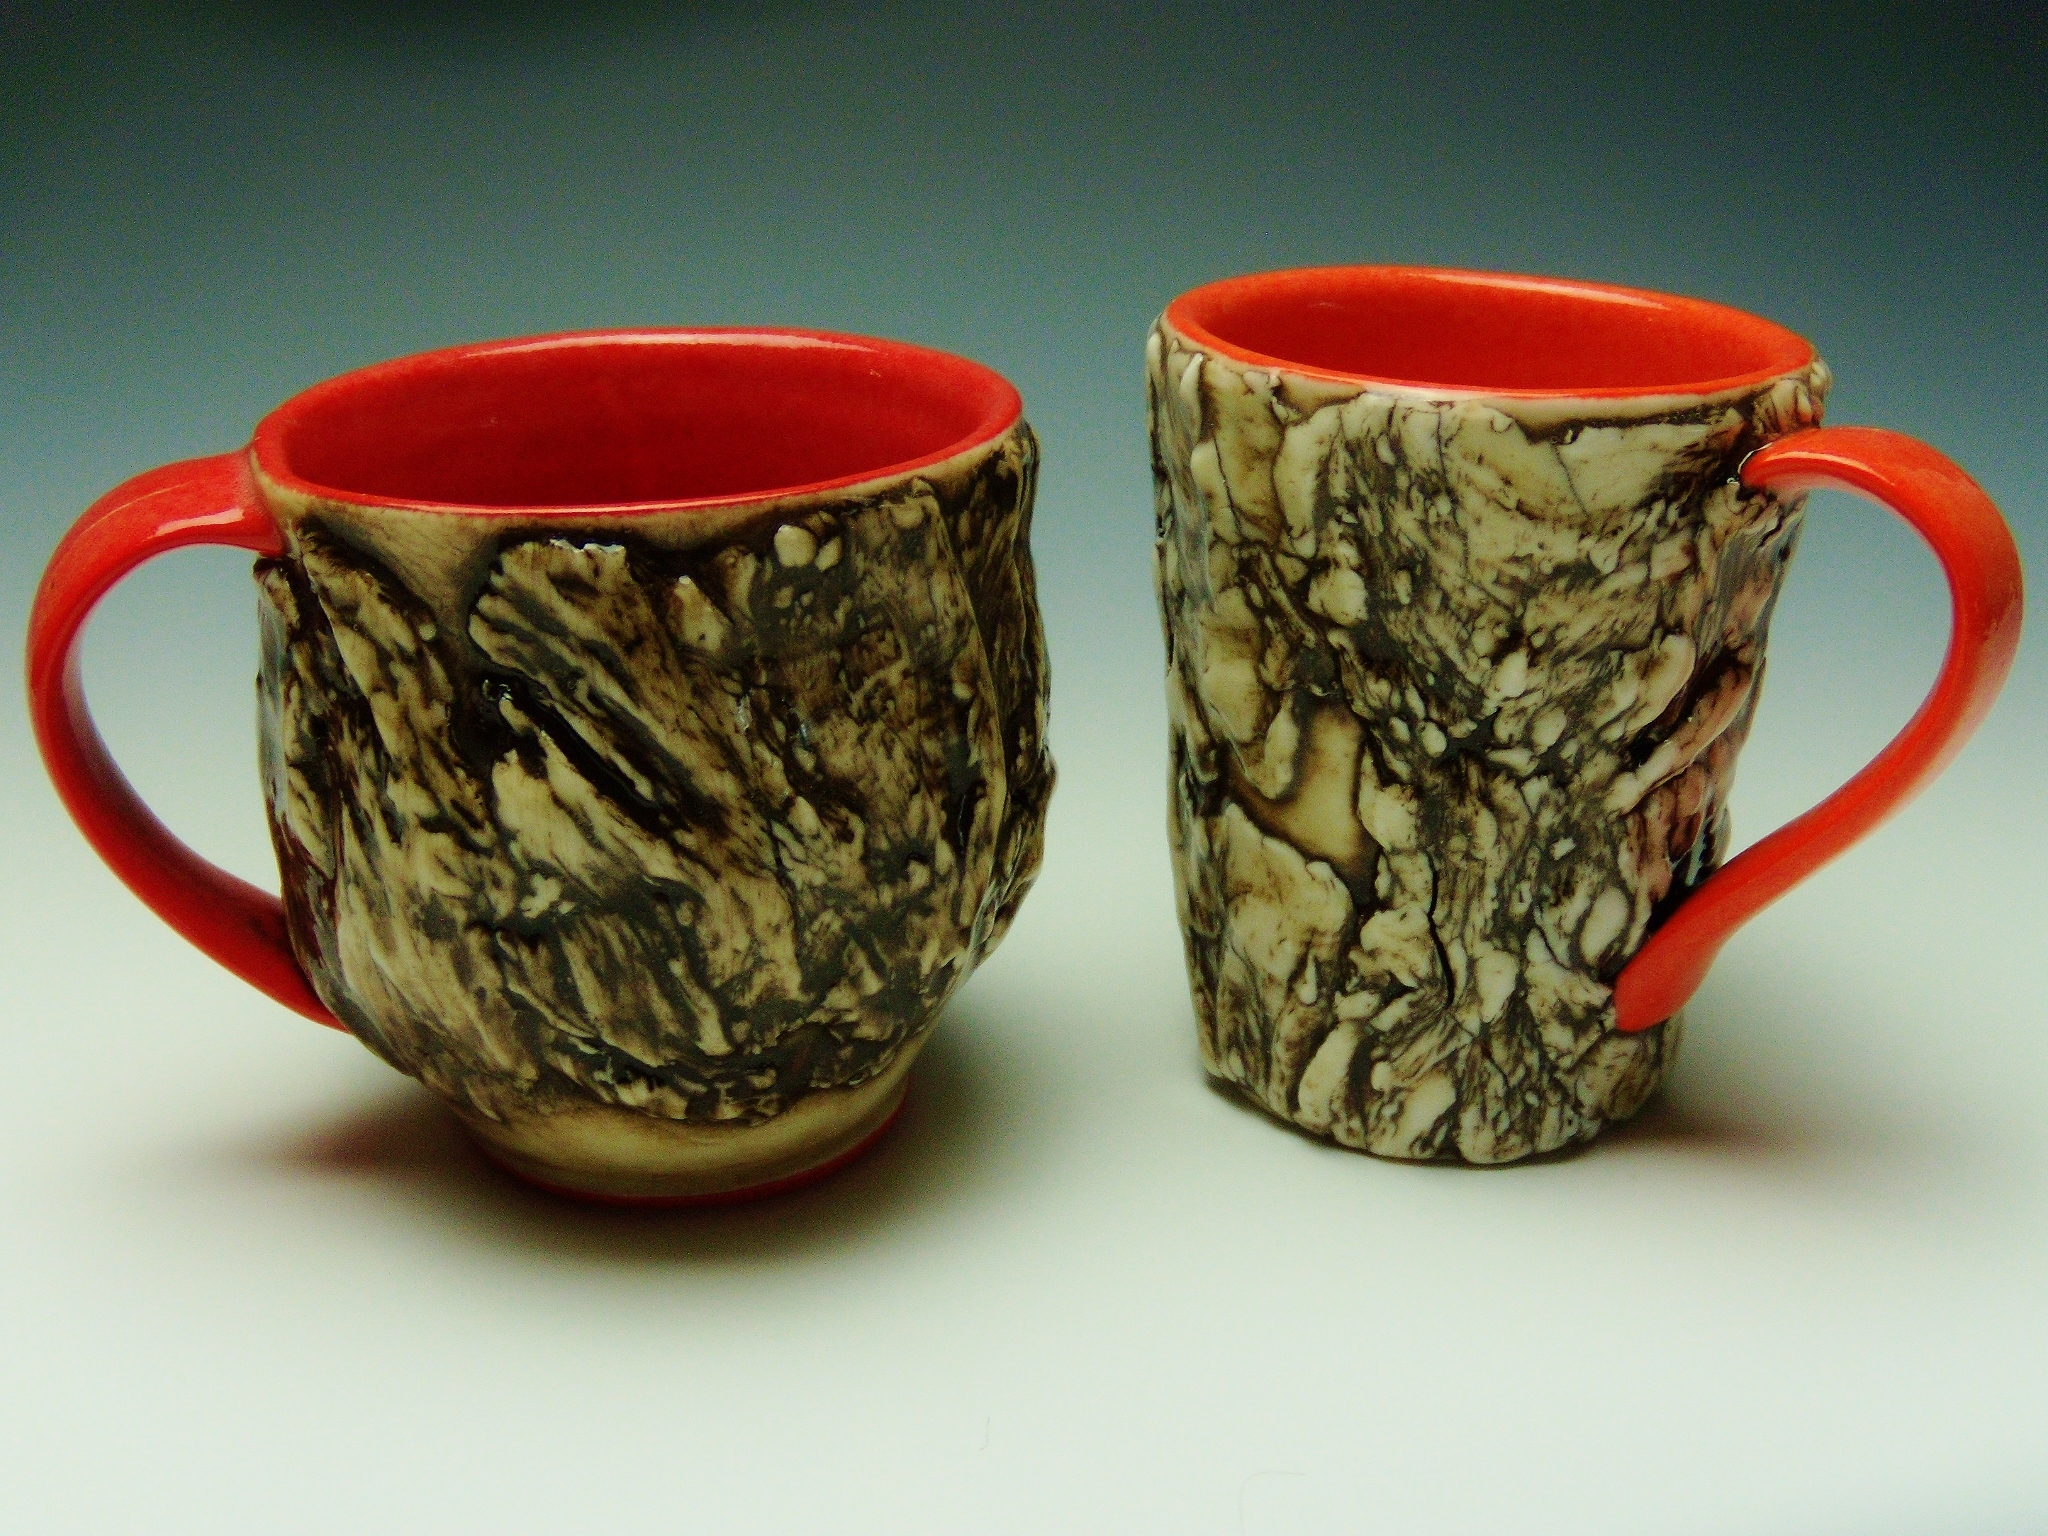 Red and Orange Bark Mugs